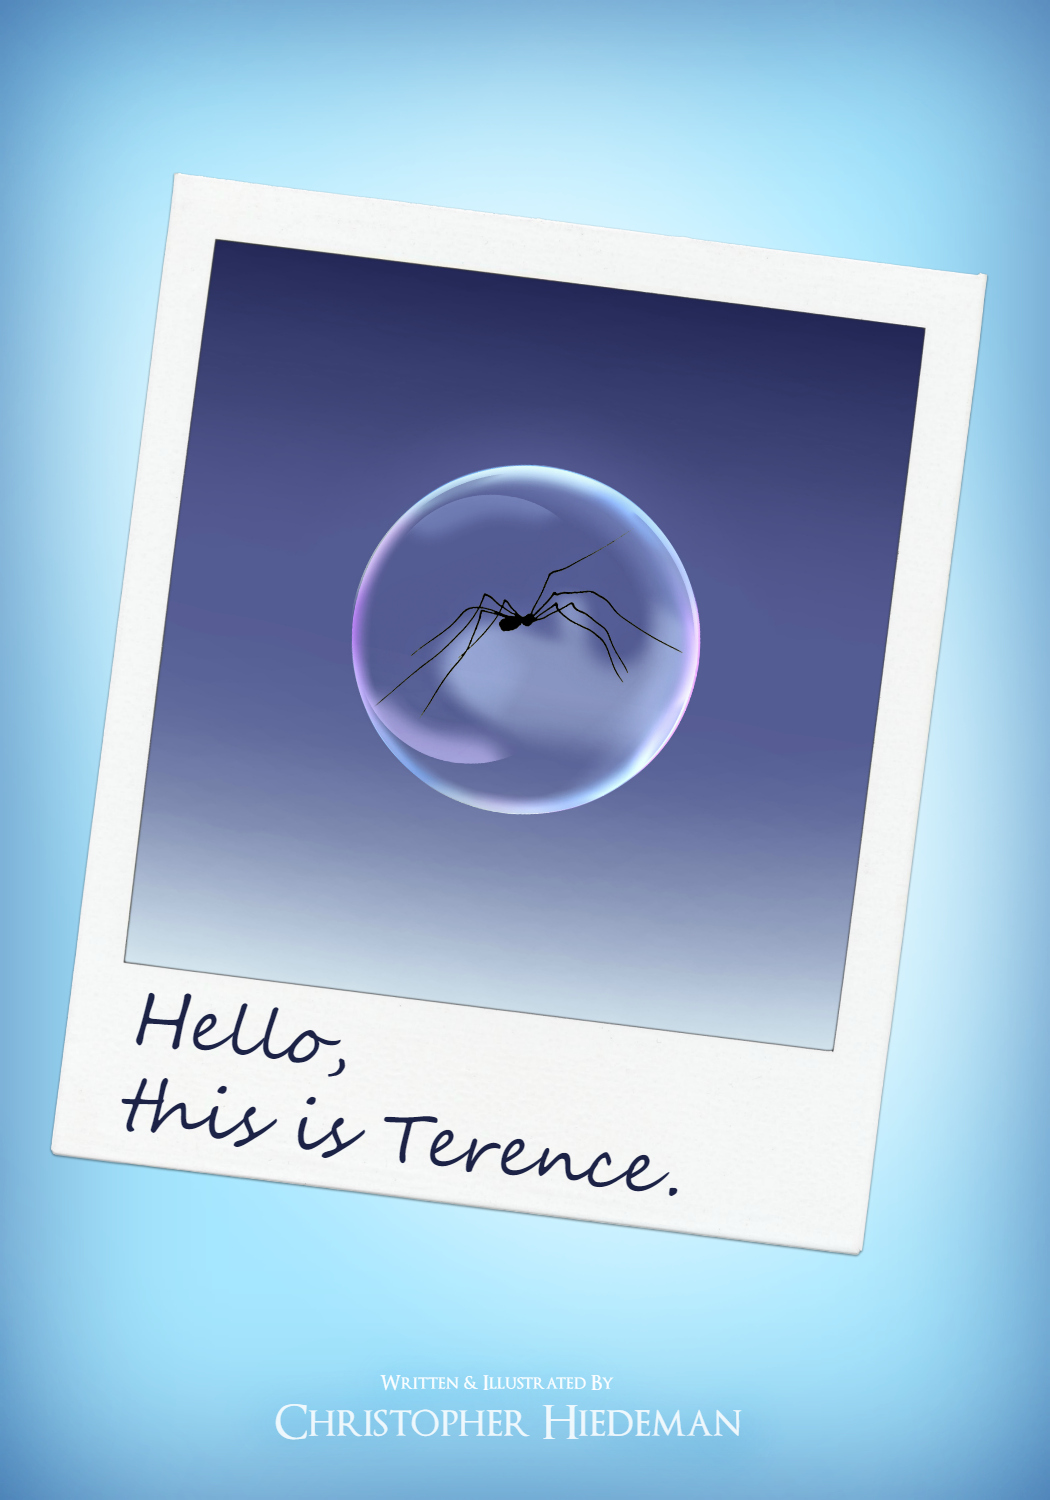 Hello, this is Terence